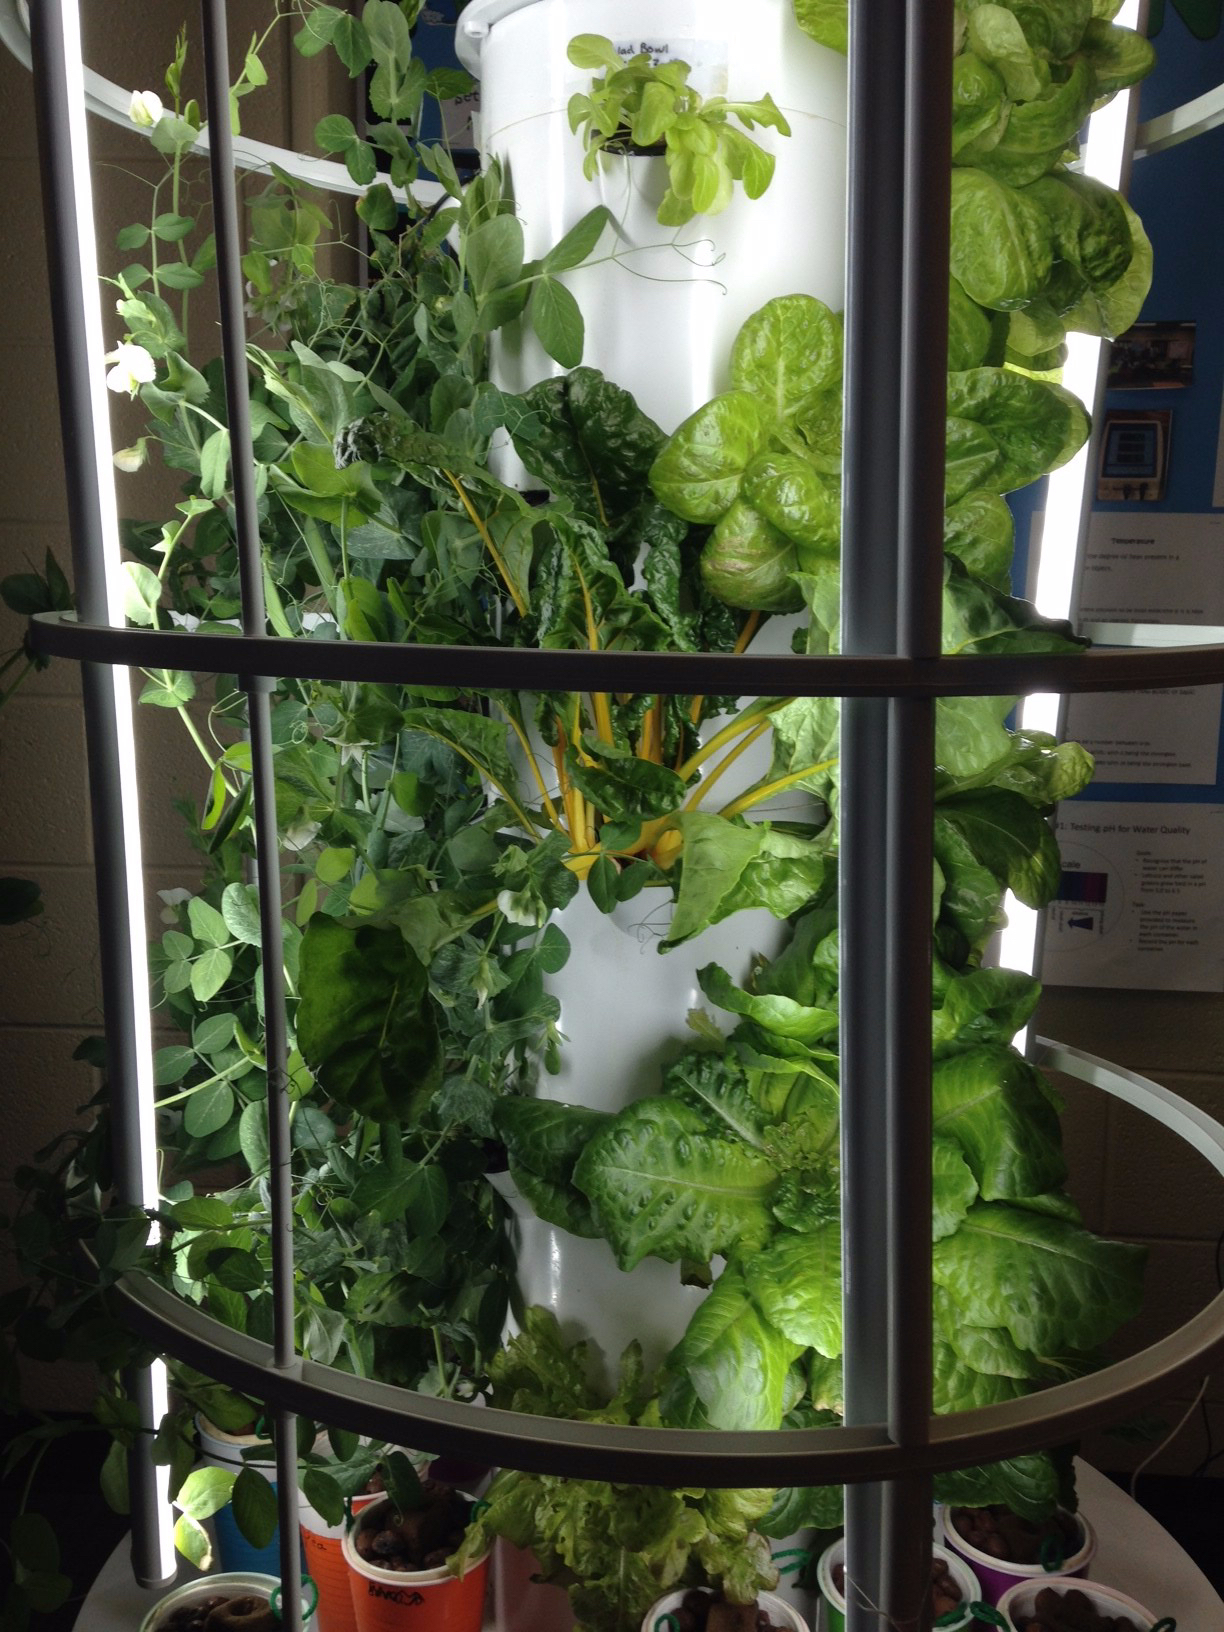 Photo of tower hydroponic system with variety of salad greens and vegetables at different stages of growth.